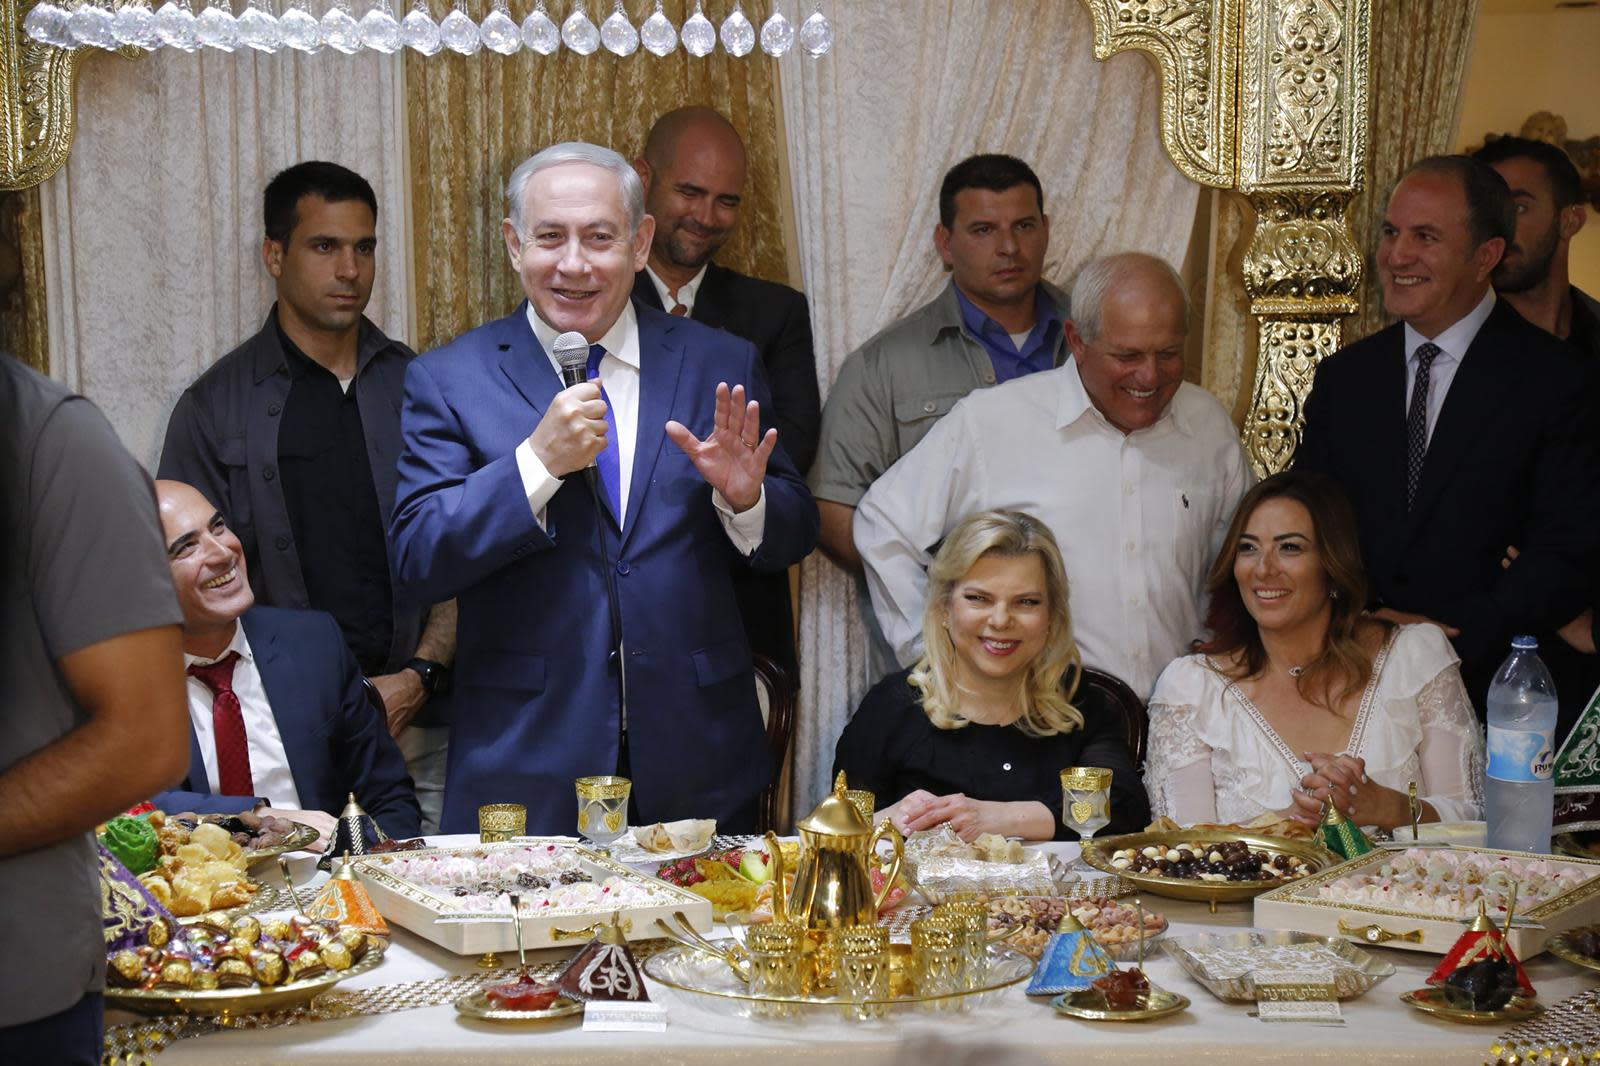 Prime Minister Benjamin Netanyahu and his wife Sara Netanyahu at the Mimouna celebration hosted by the Swissa family in Gan Yavne, April 2018 (Courtesy)